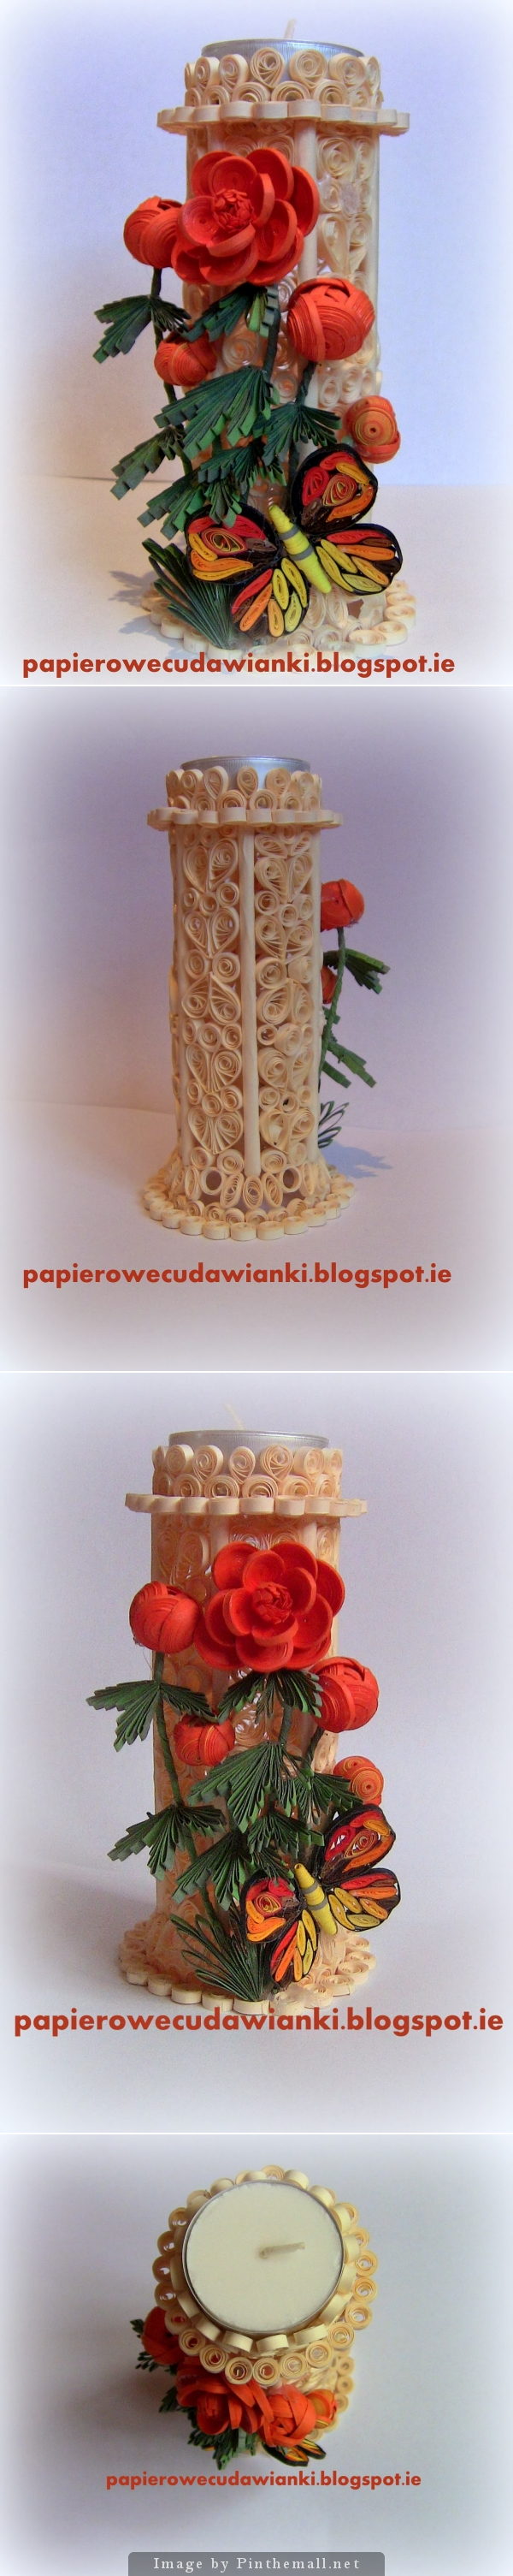 Quilling wedding decorations  Tall candle in glass  Quilling  Pinterest  Quilling Glass and